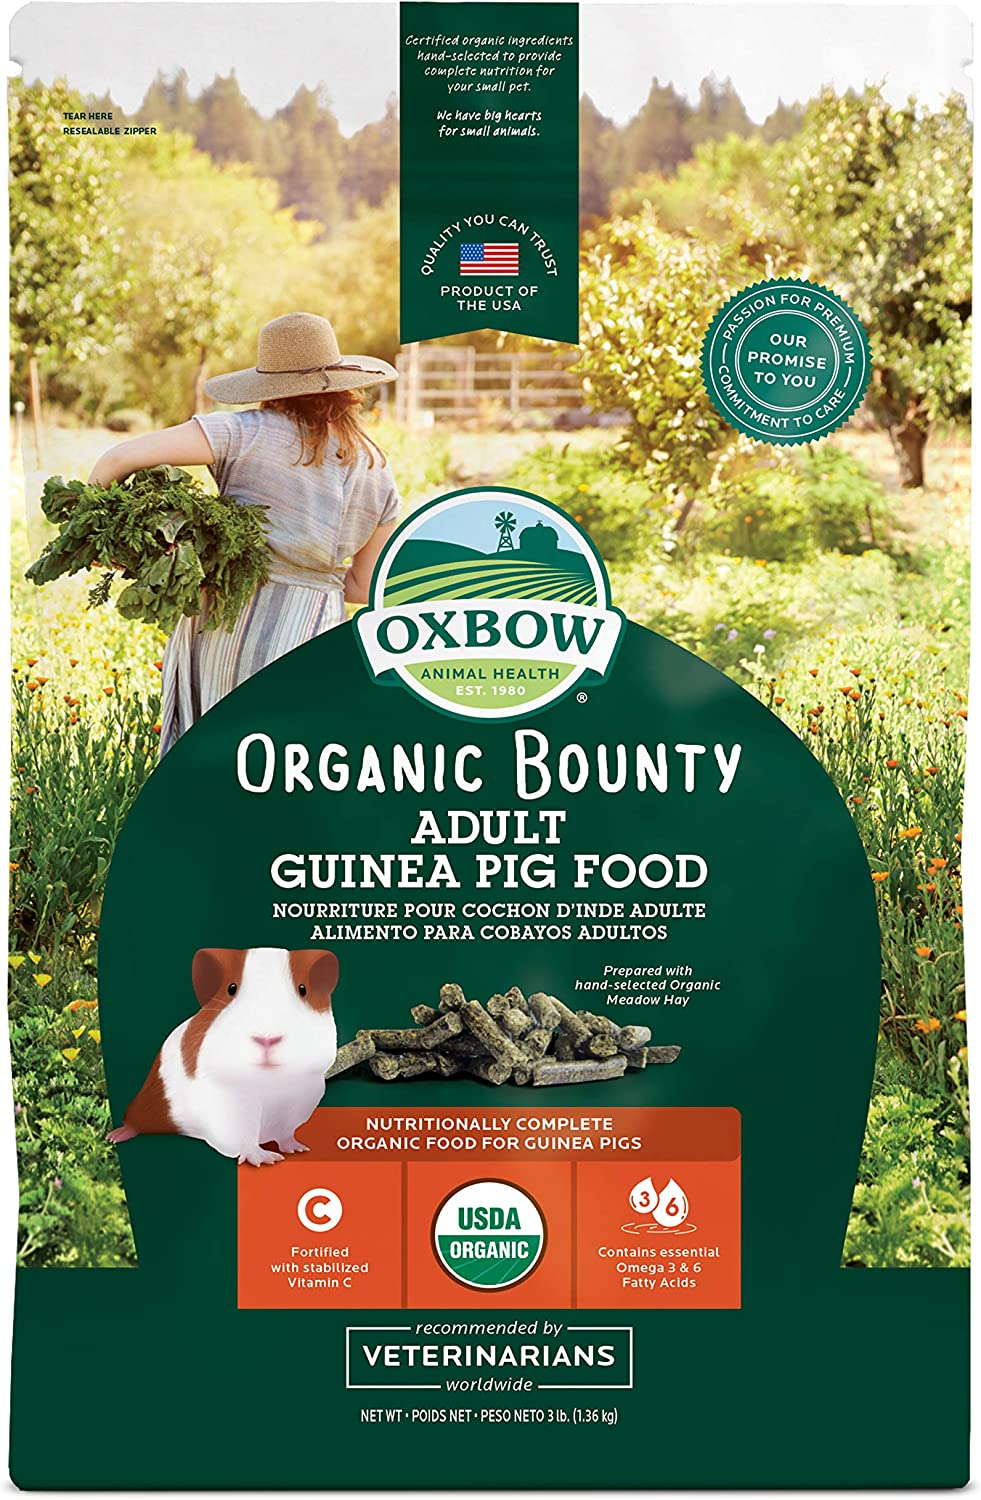 Oxbow Animal Health Organic Bounty Adult Guinea Pig Food, Made In The USA, 3 Pound Bag